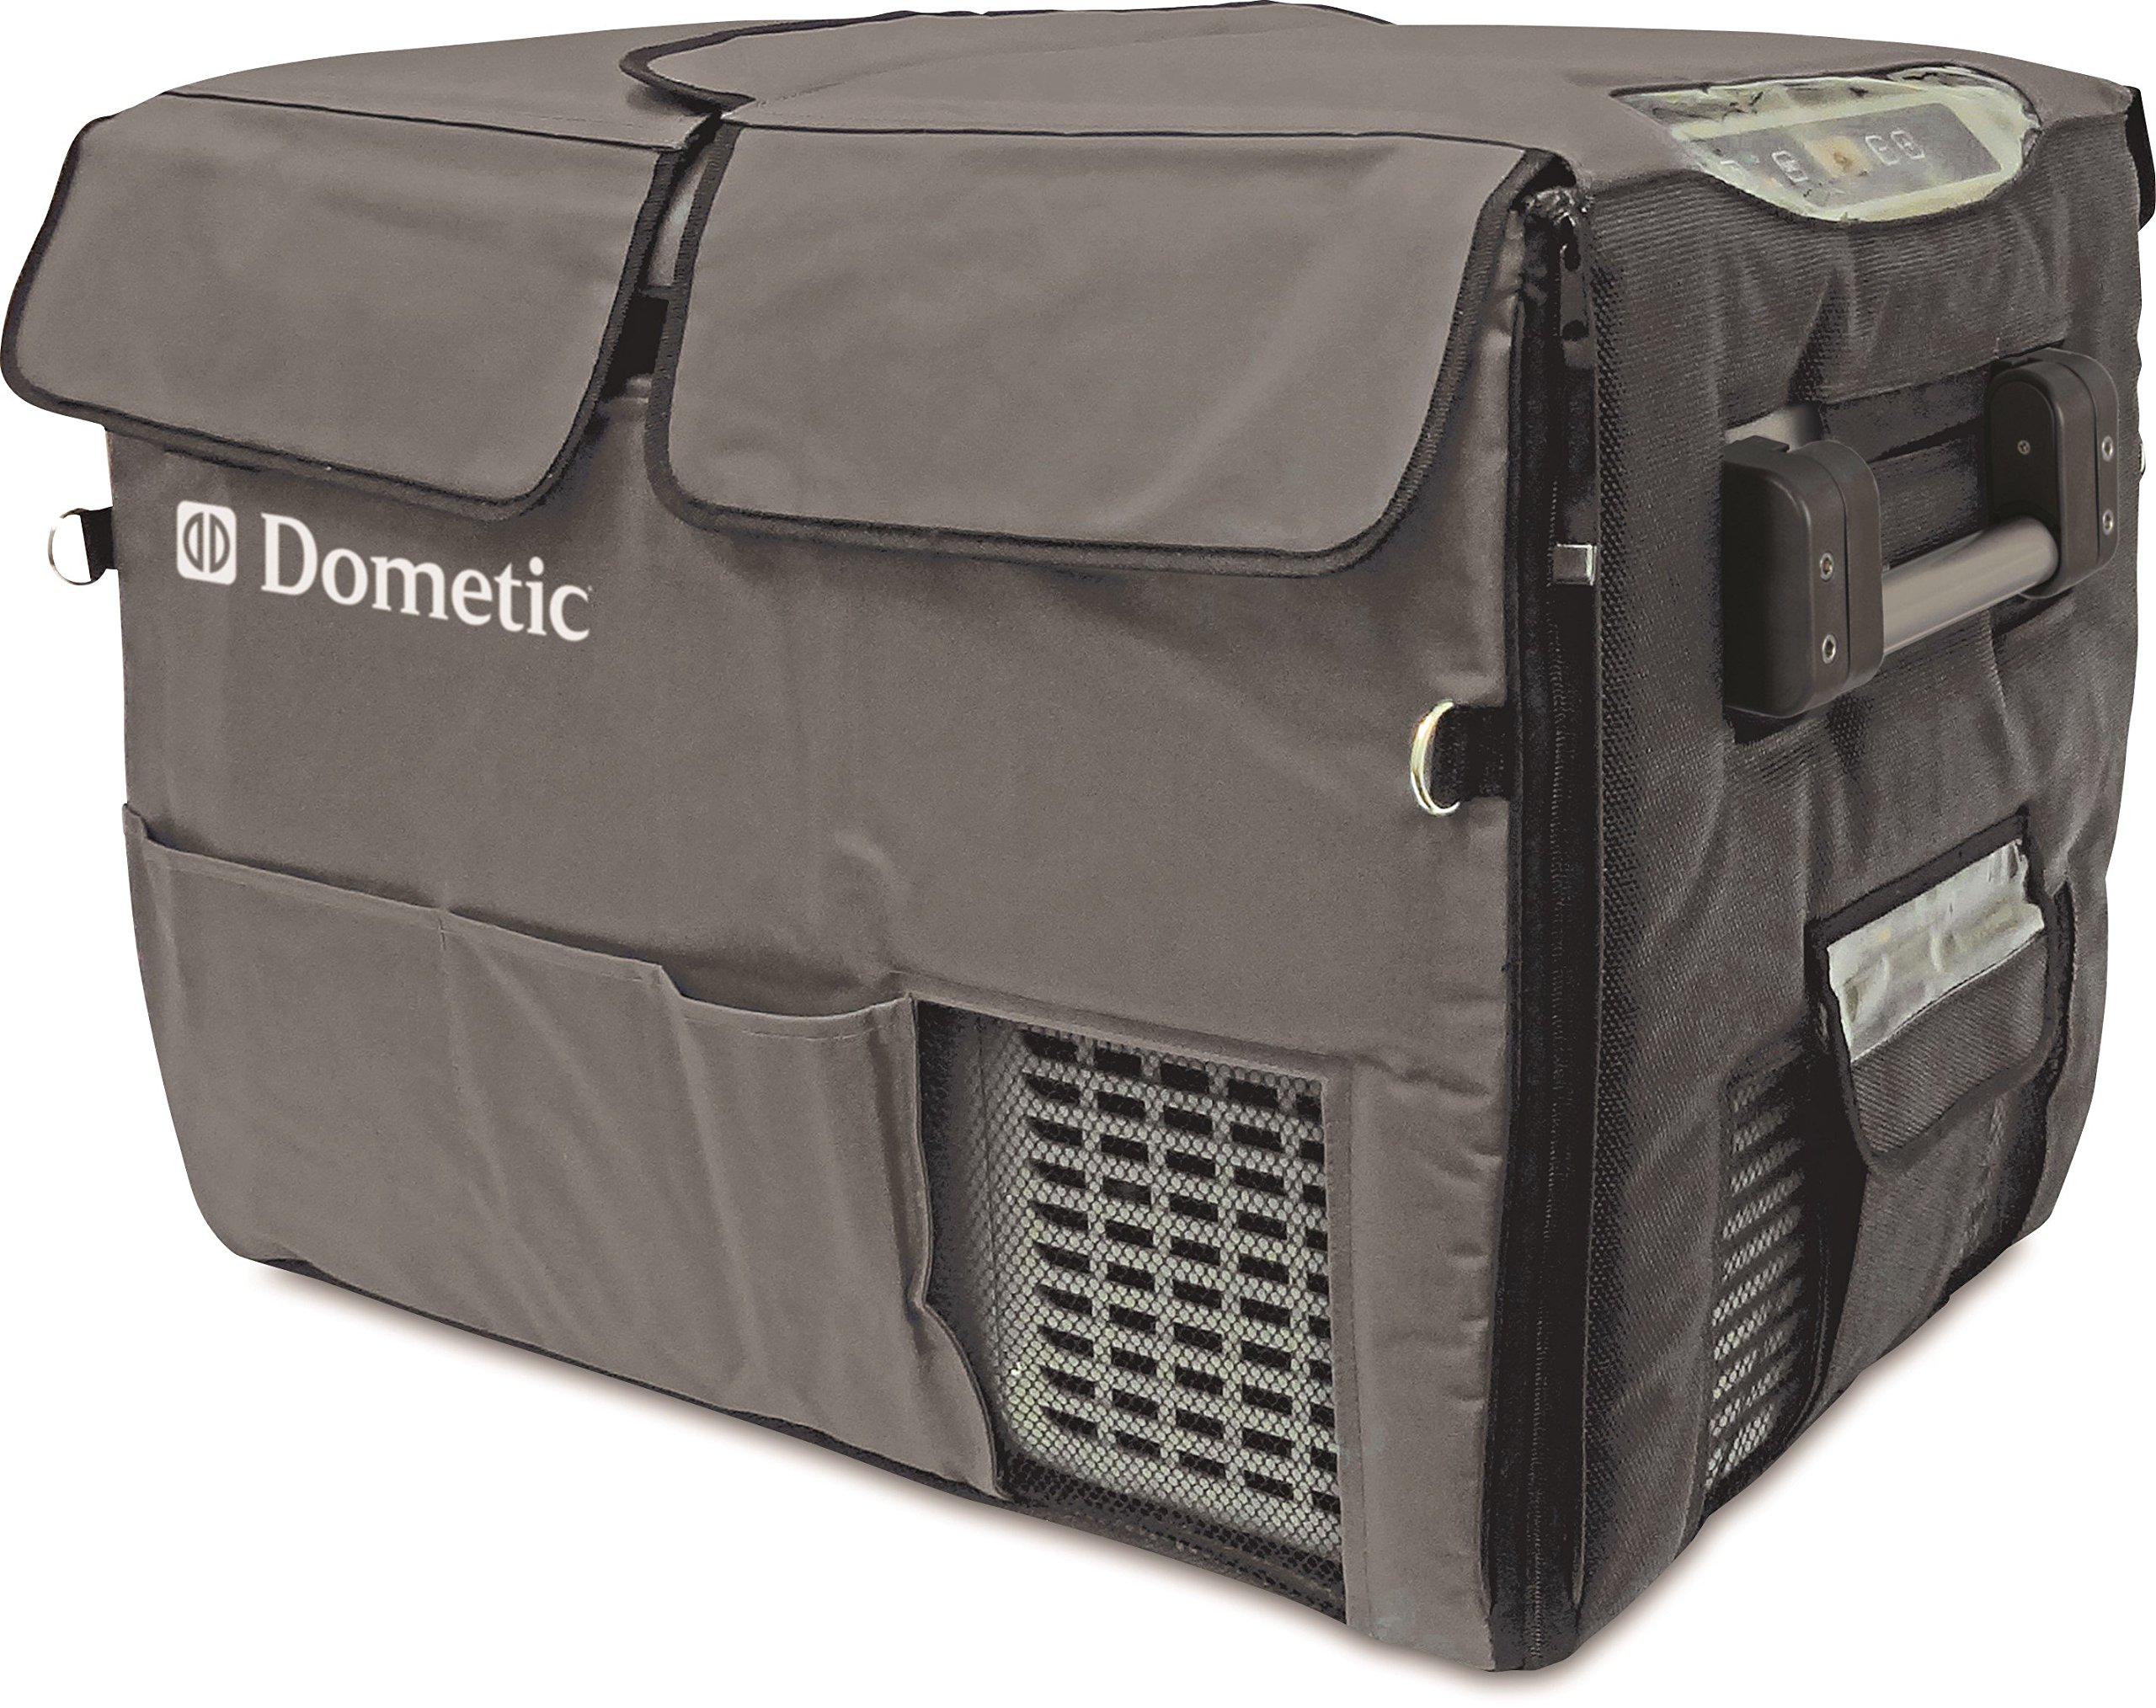 Dometic CFX-CVR50 Insulated Protective Cover for CFX-50US